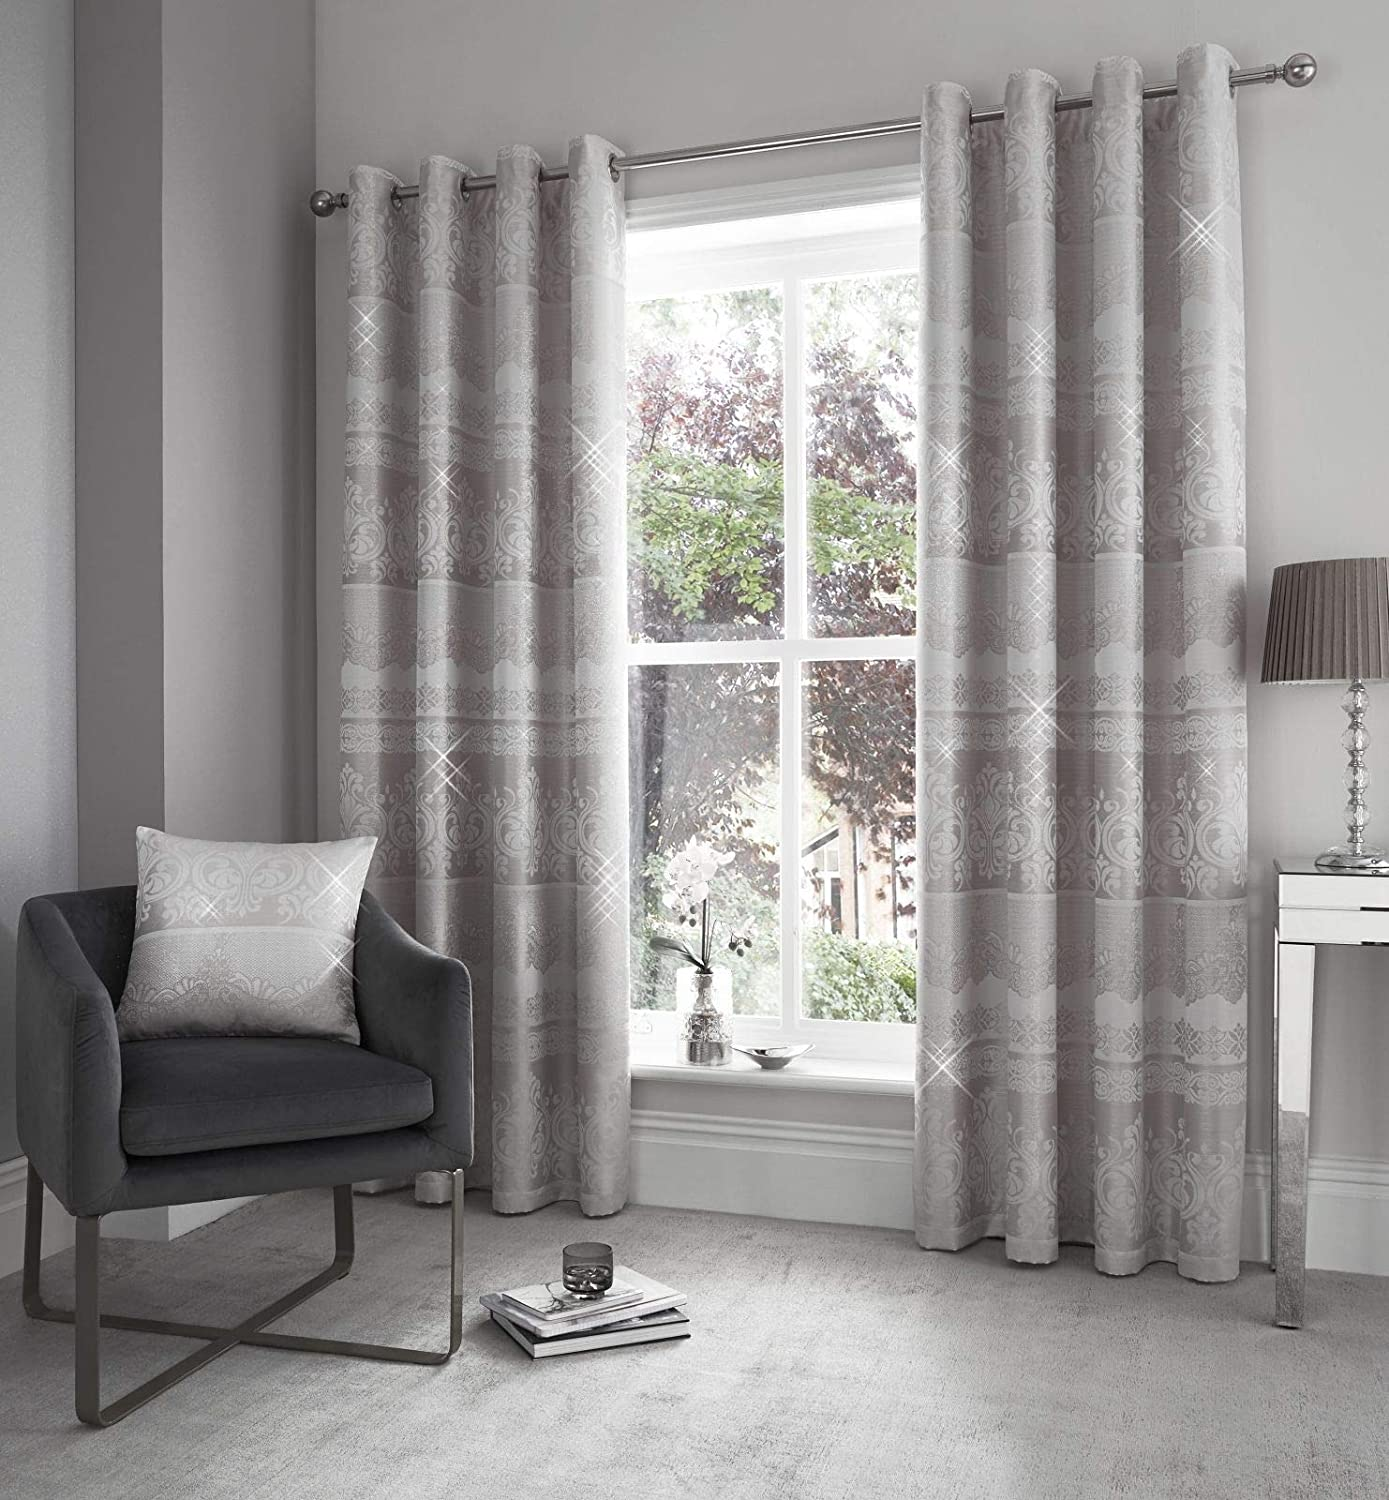 Catherine Lansfield Elegance Jacquard Ösenvorhang, Polyester, Silber, Eyelet Curtains - 66x90 inch,